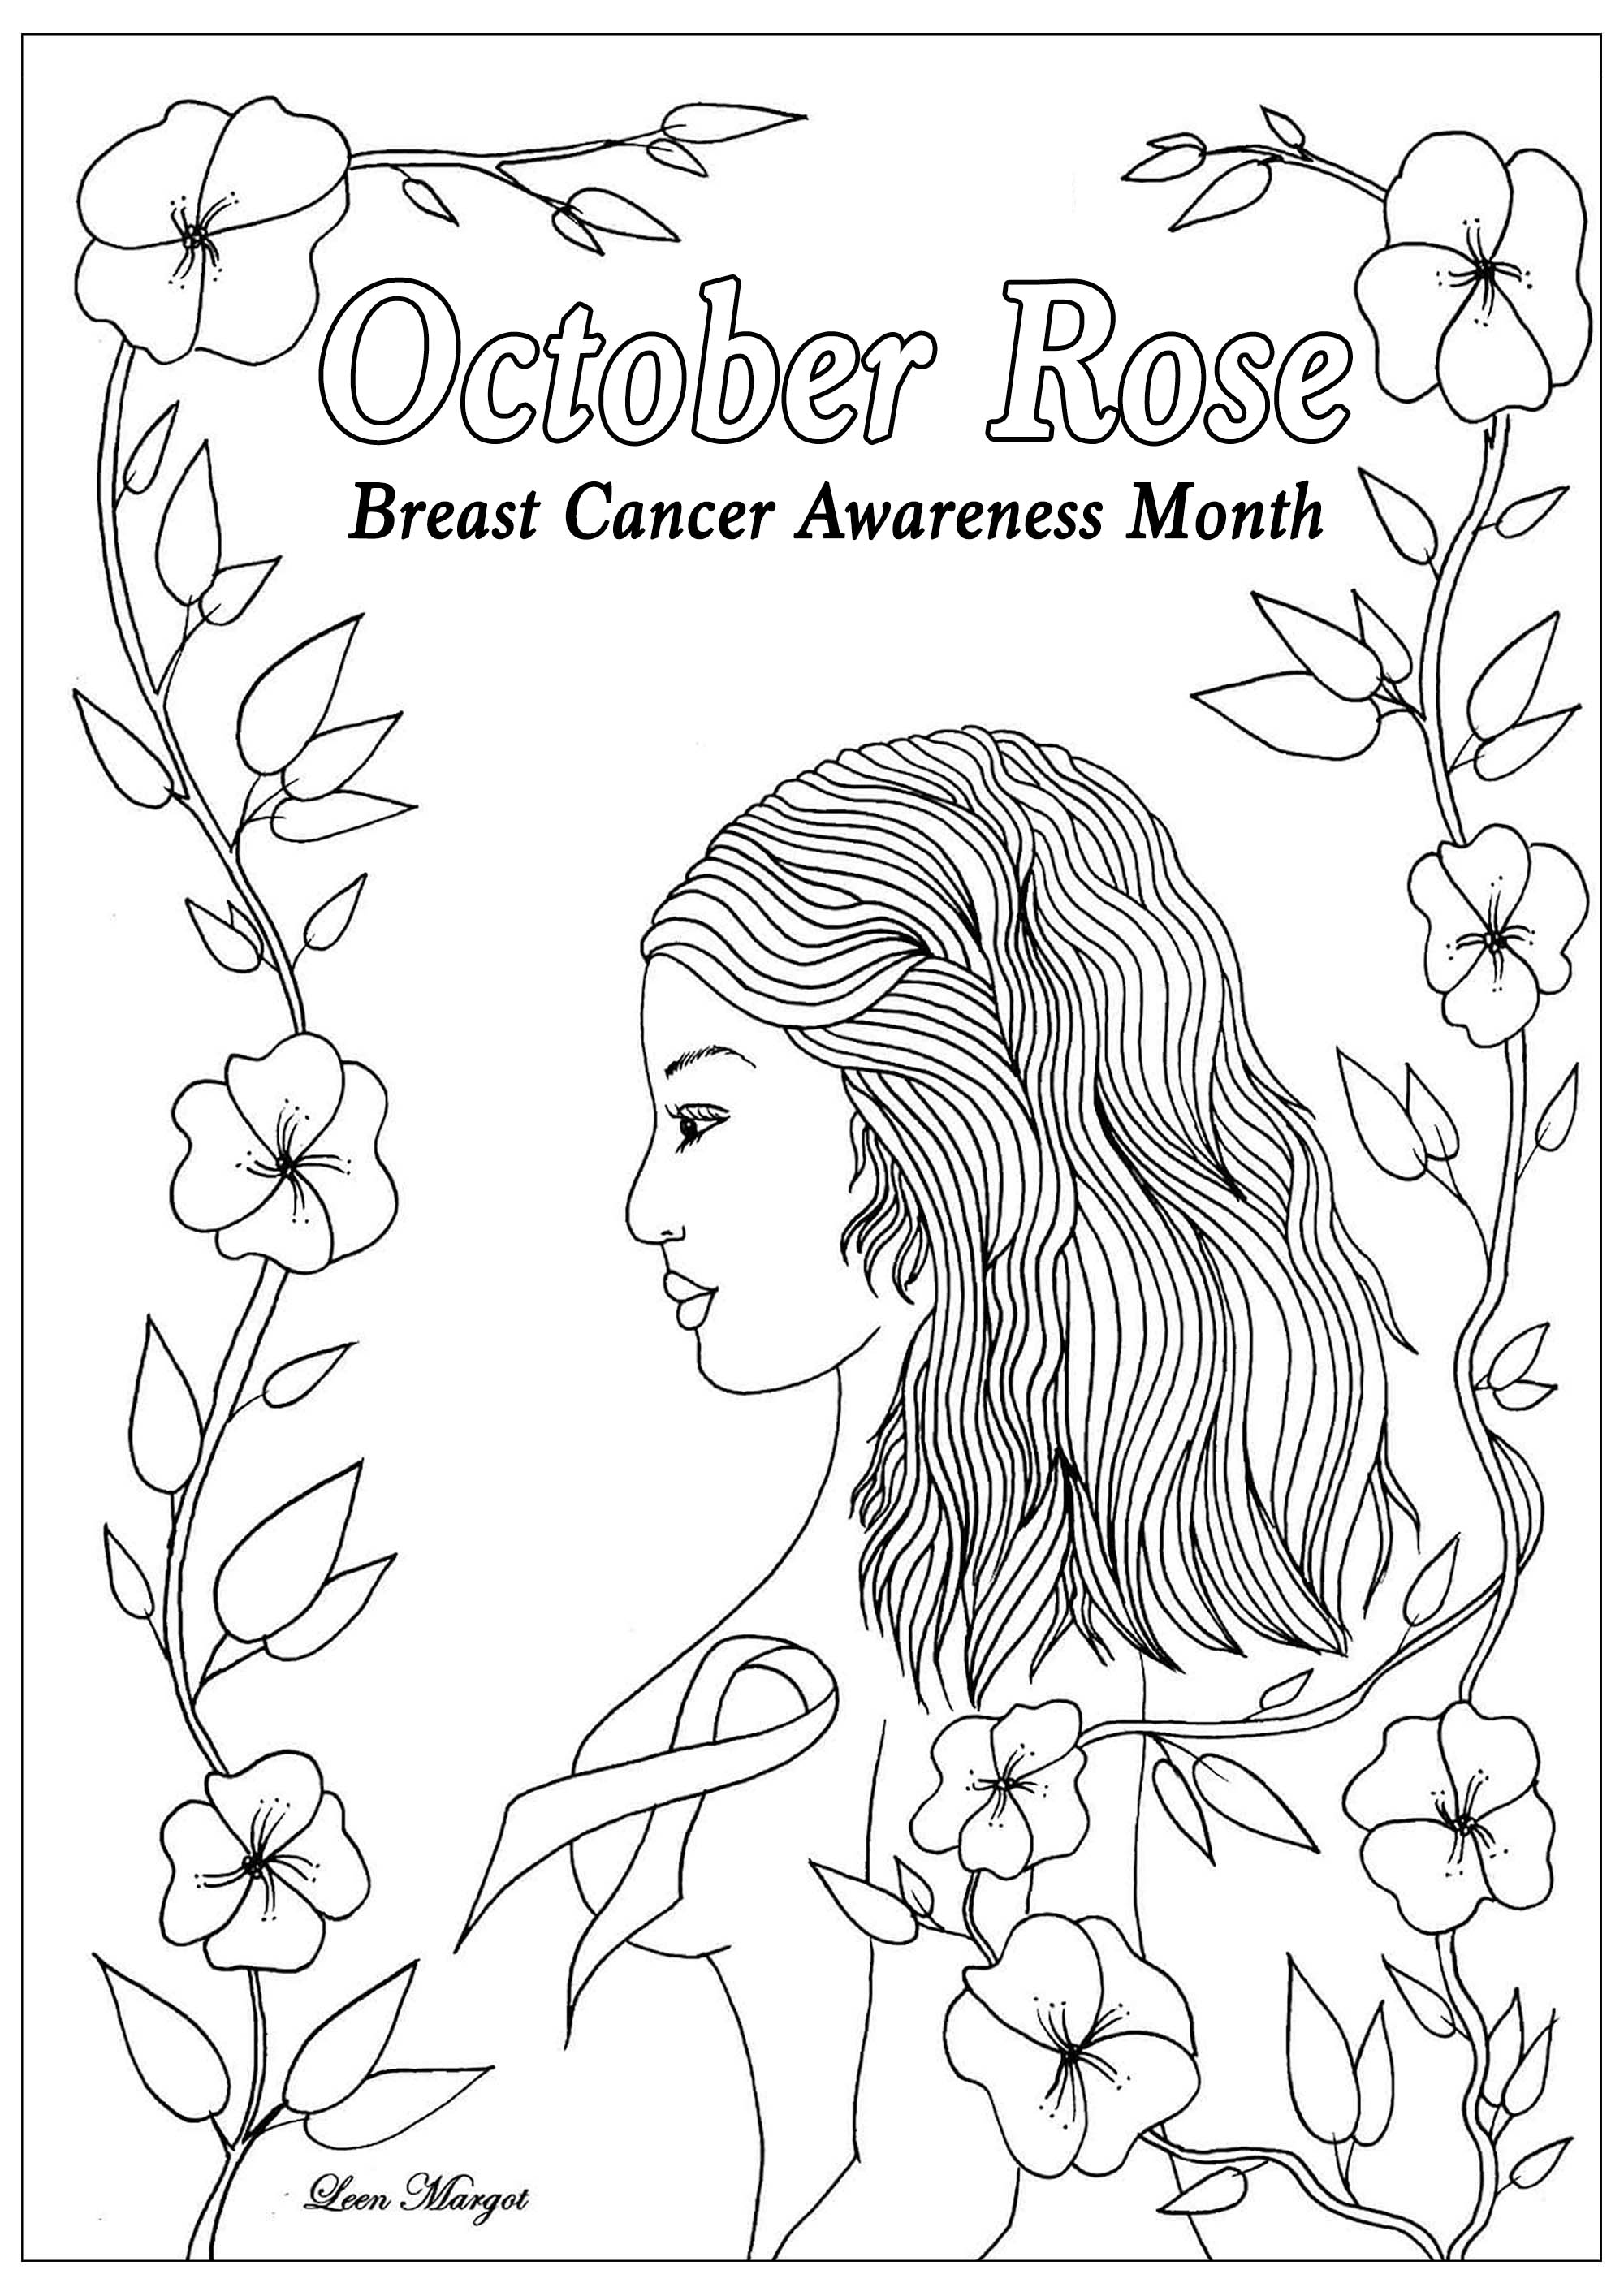 Exclusive coloring page created for October rose : Breast Cancer Awareness Month (Version 1)